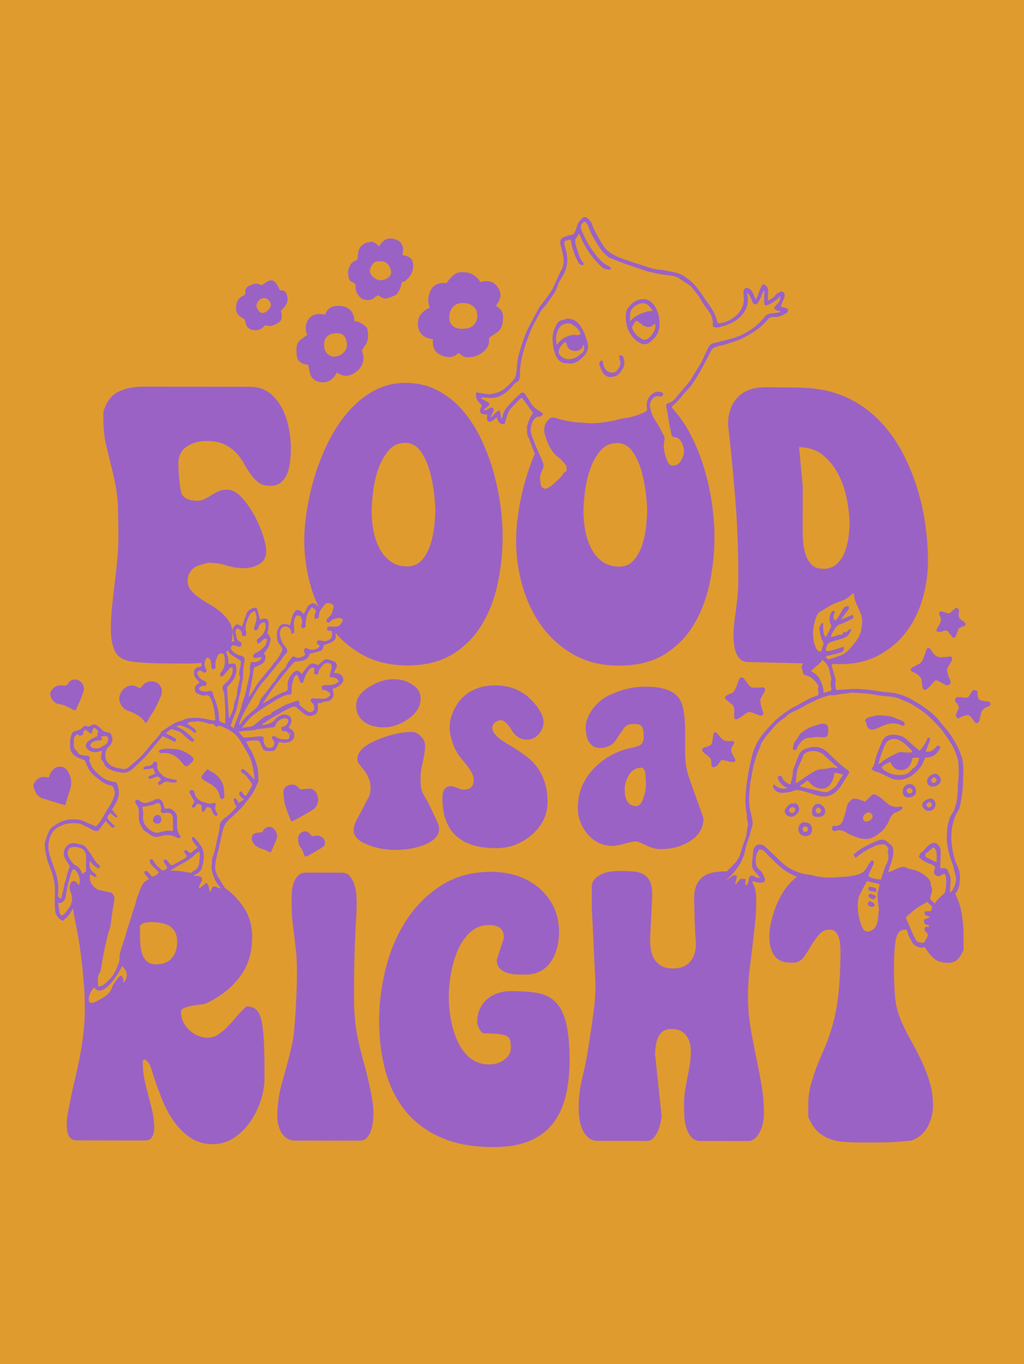 FOOD IS A RIGHT by FREE LUNCH